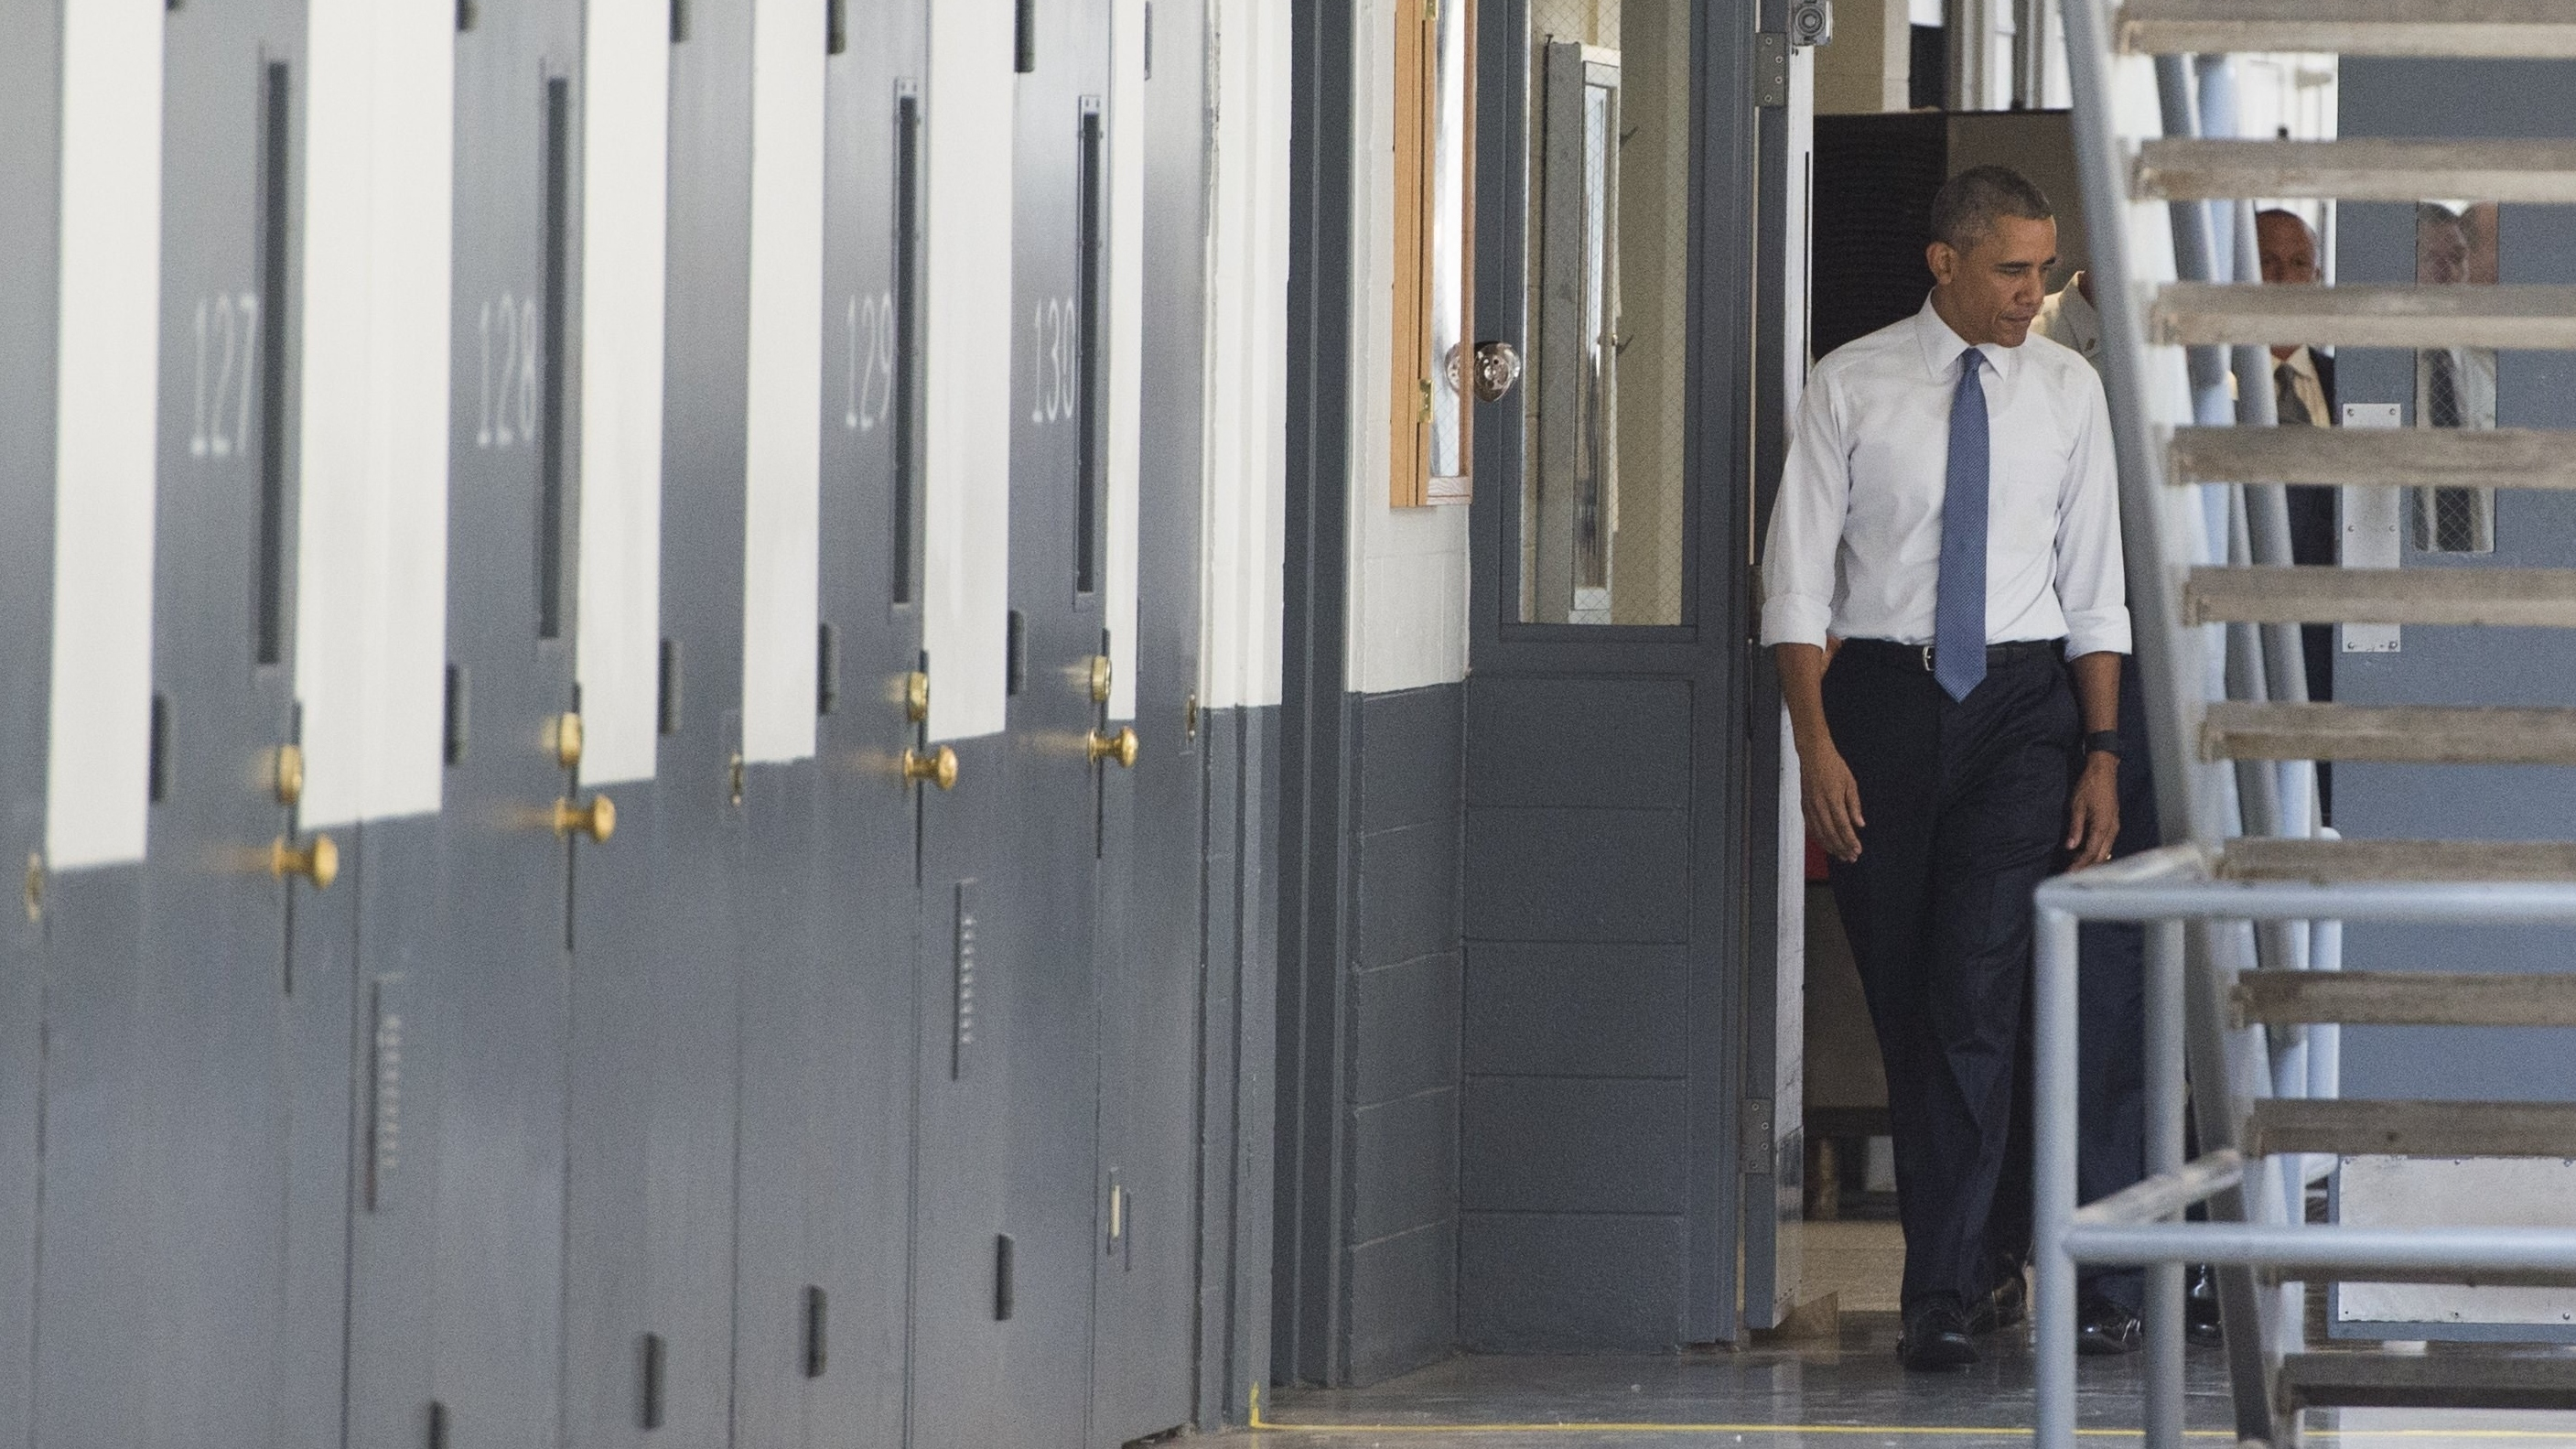 Obama Visits Federal Prison A First For A Sitting President